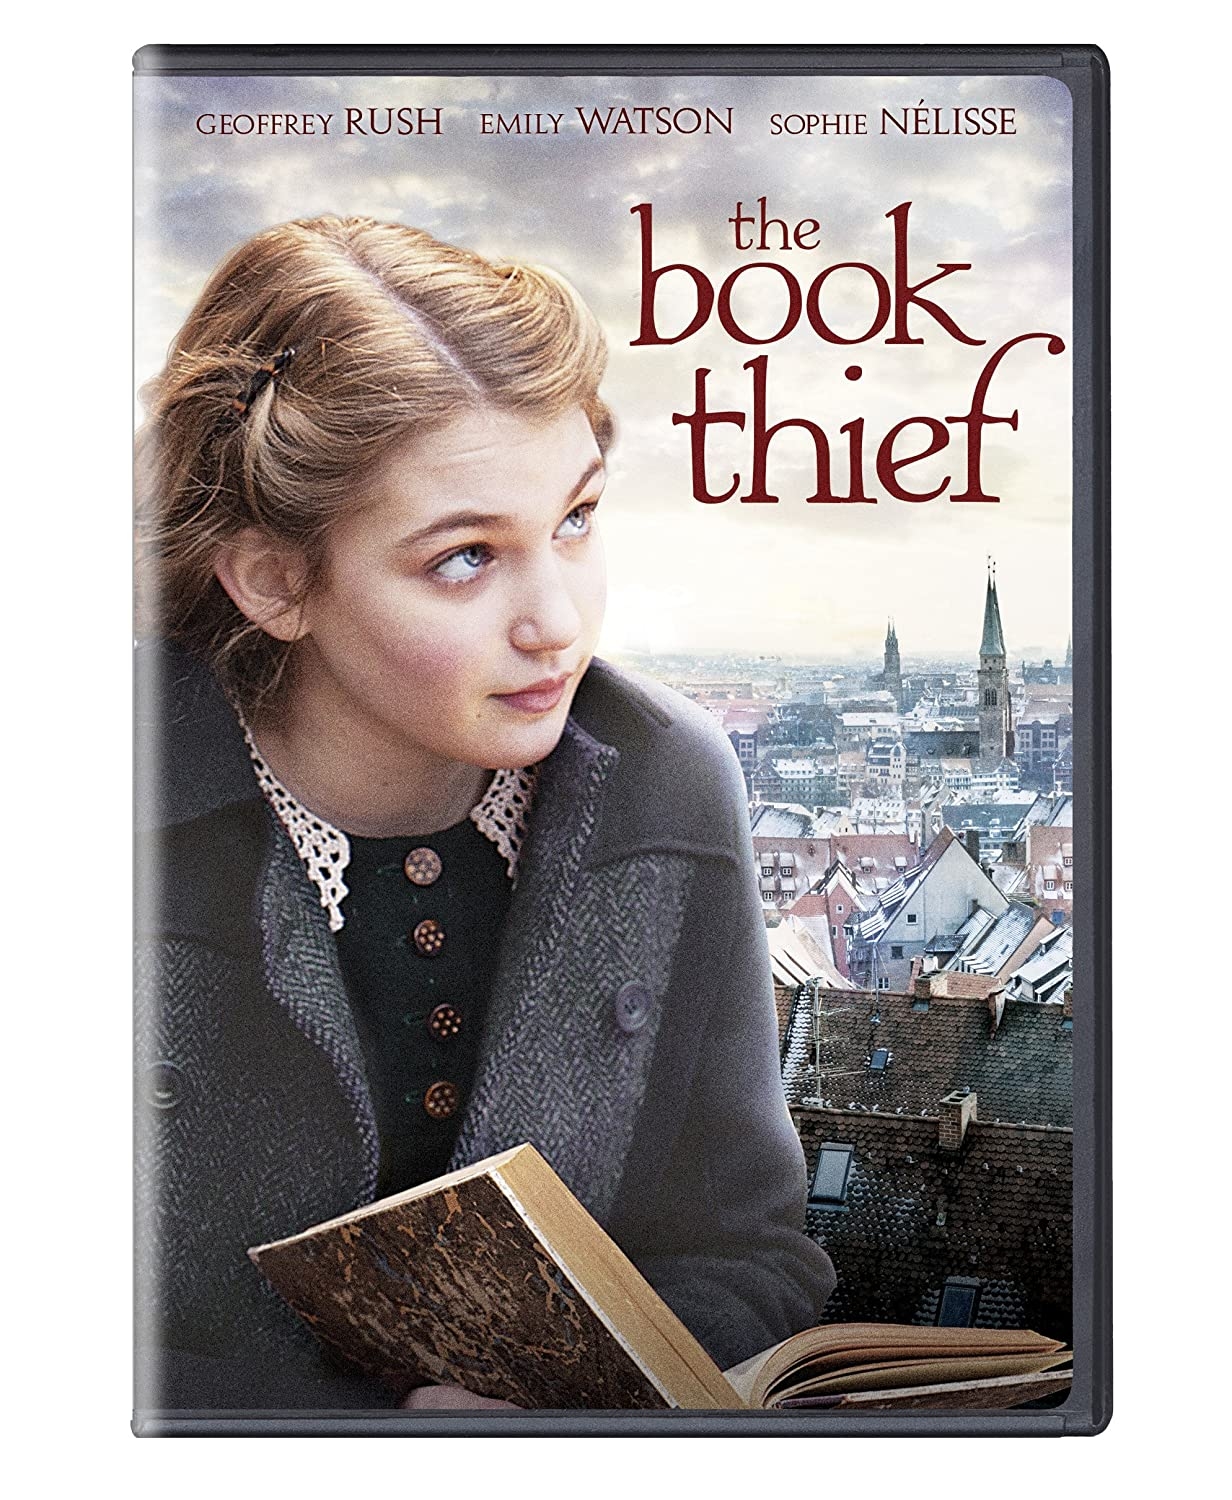 com the book thief sophie n eacute lisse emily watson geoffrey com the book thief sophie neacutelisse emily watson geoffrey rush brian percival movies tv